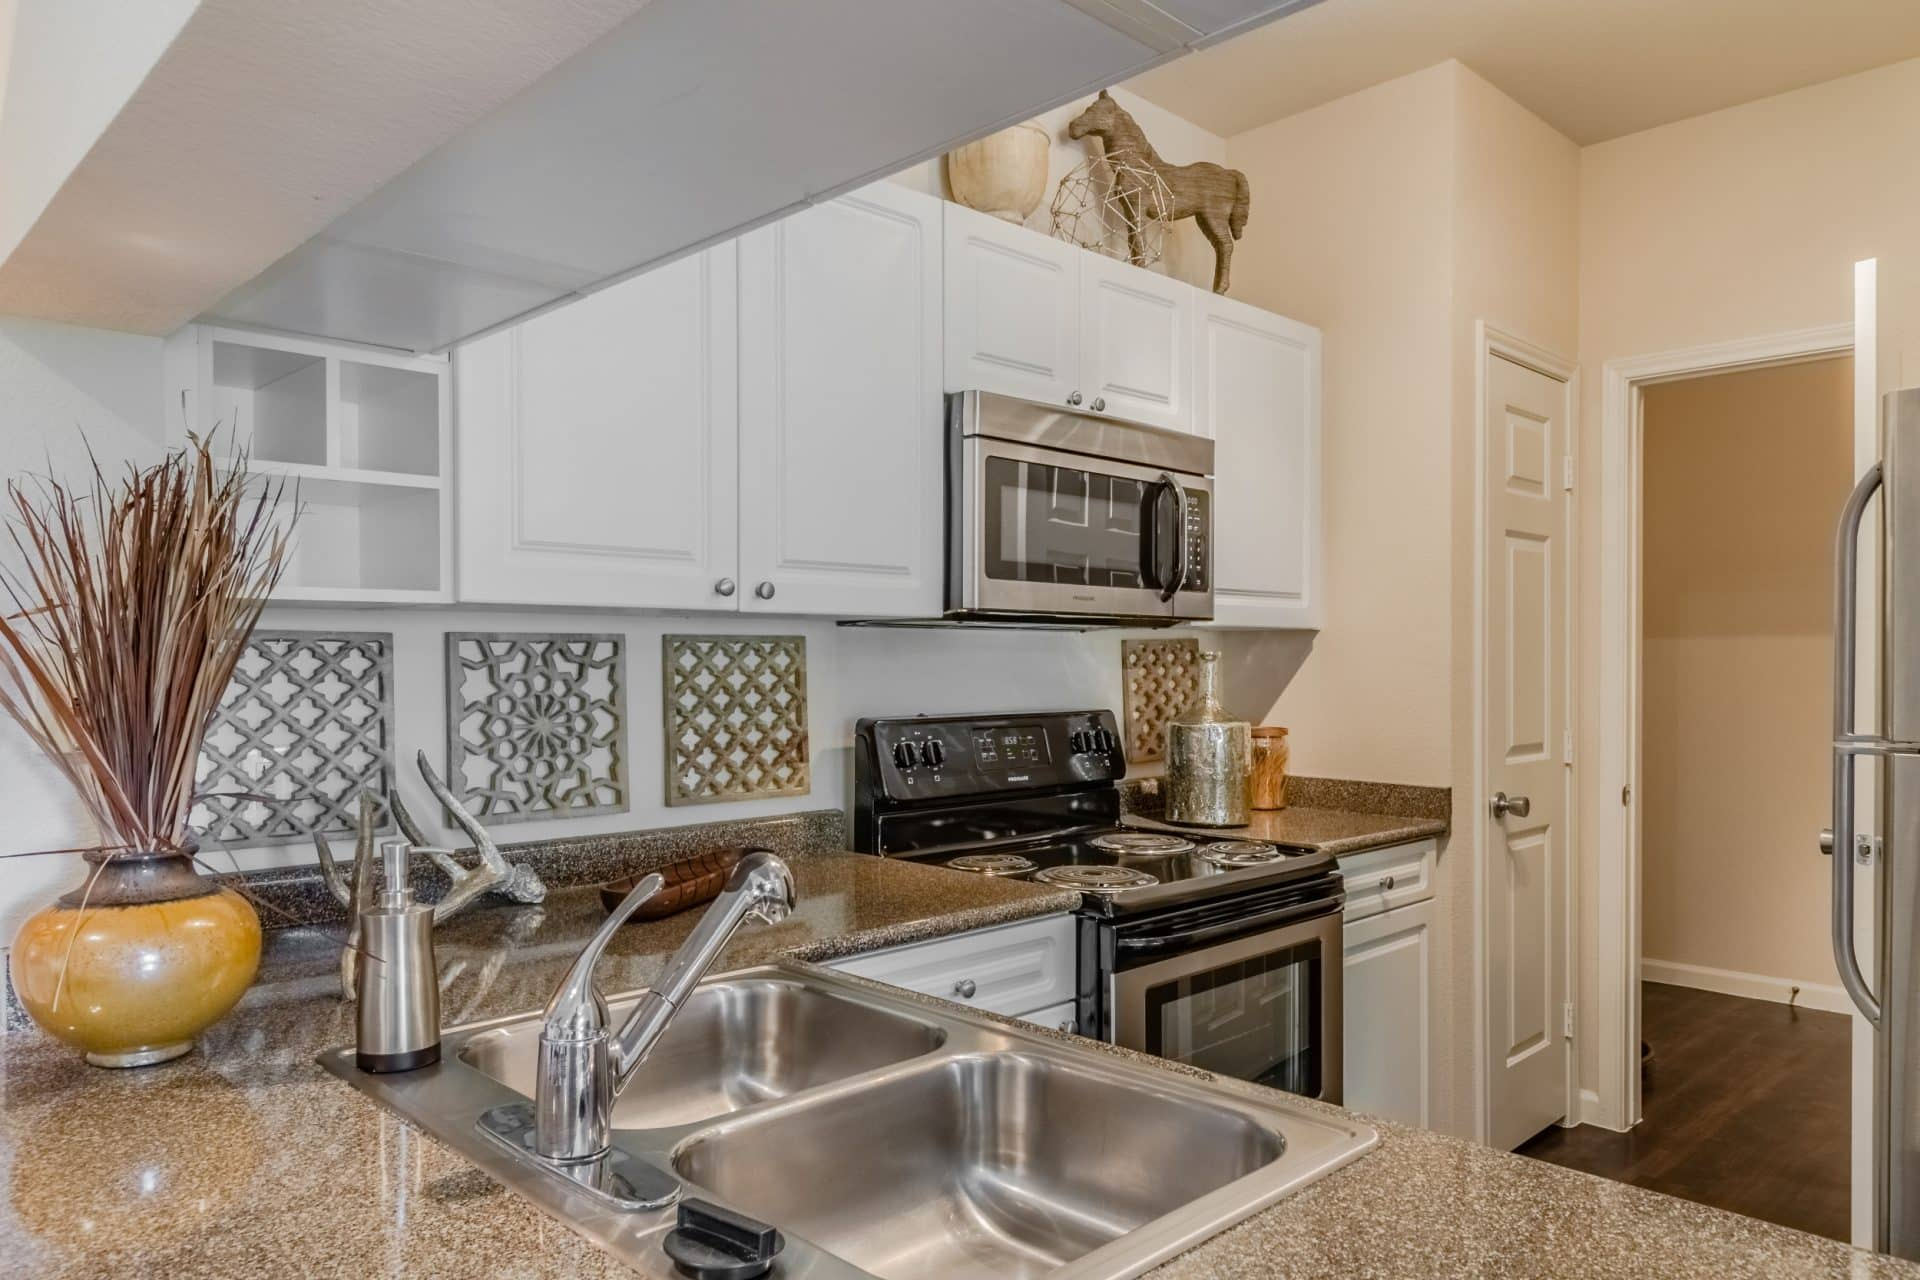 Stainless-Steel Frigidaire Appliances or White Appliances